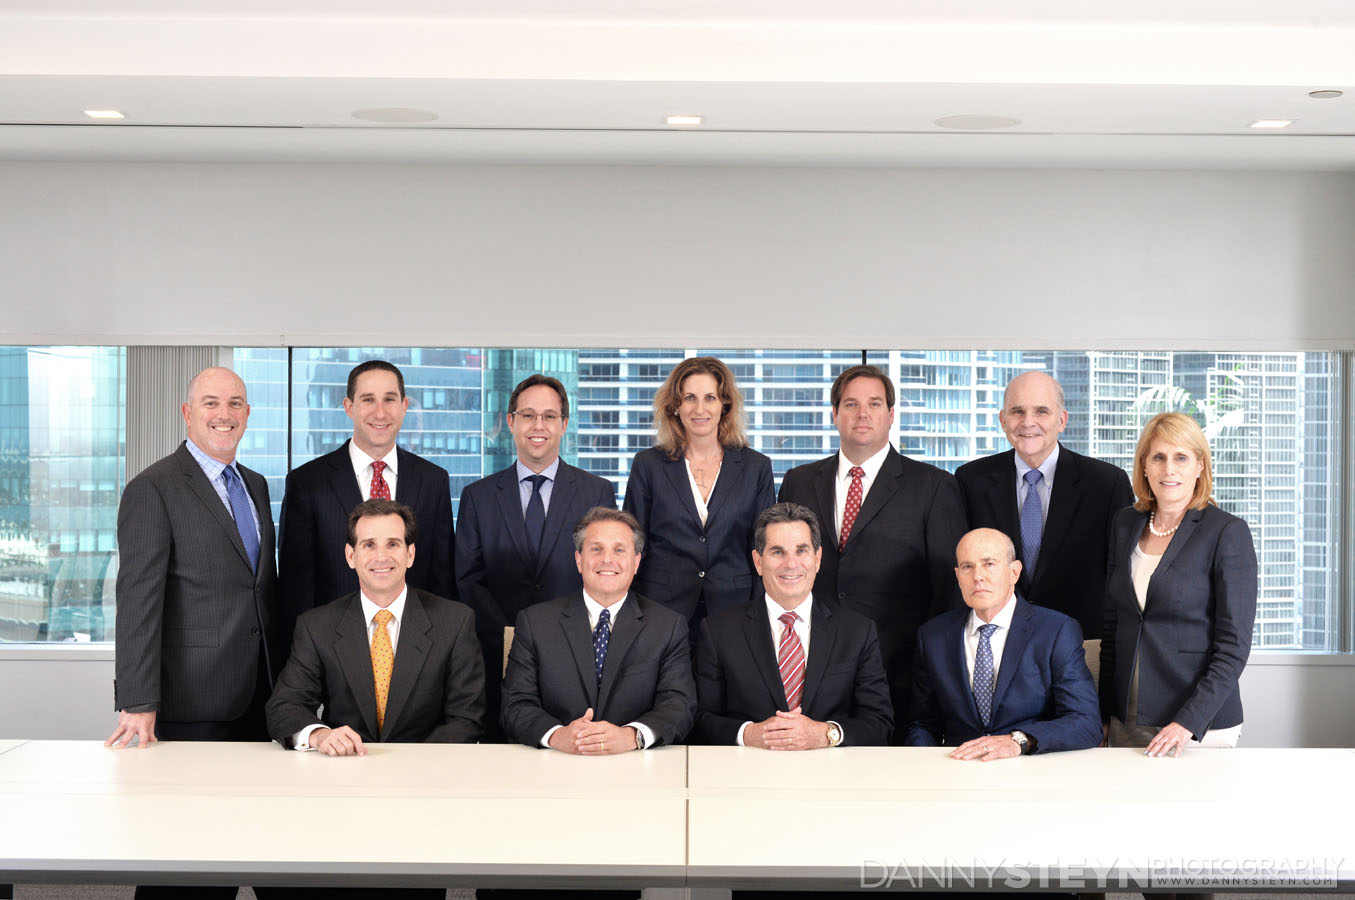 Attorney portraits photography miami